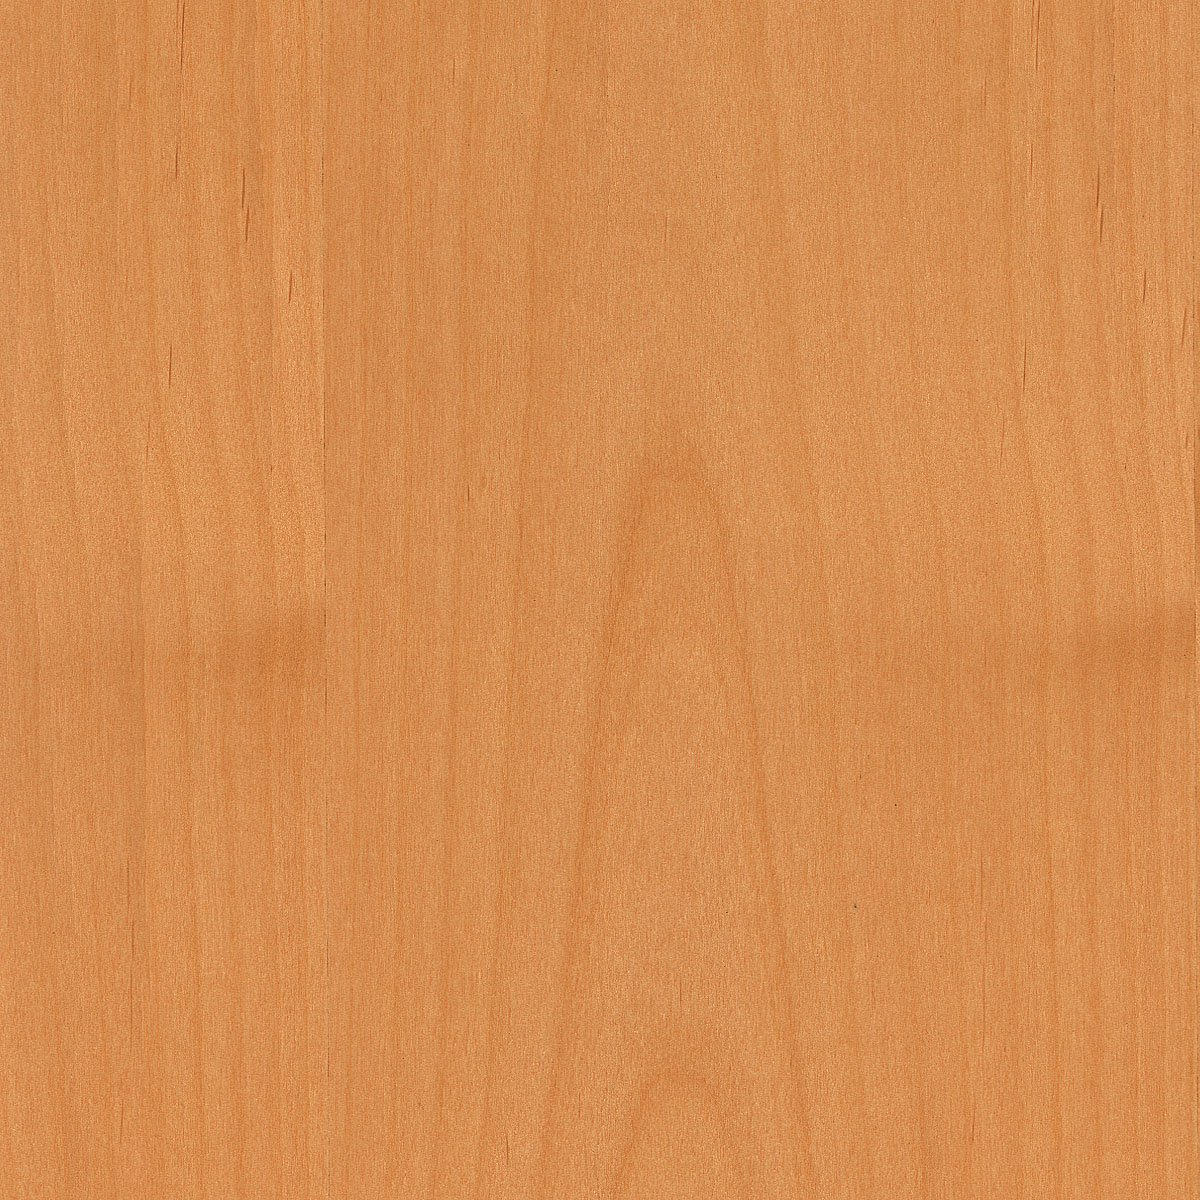 Alder, Clear, Various Cut, 48X96 10 mil (Paperback) Wood Veneer Sheet by Wood-All